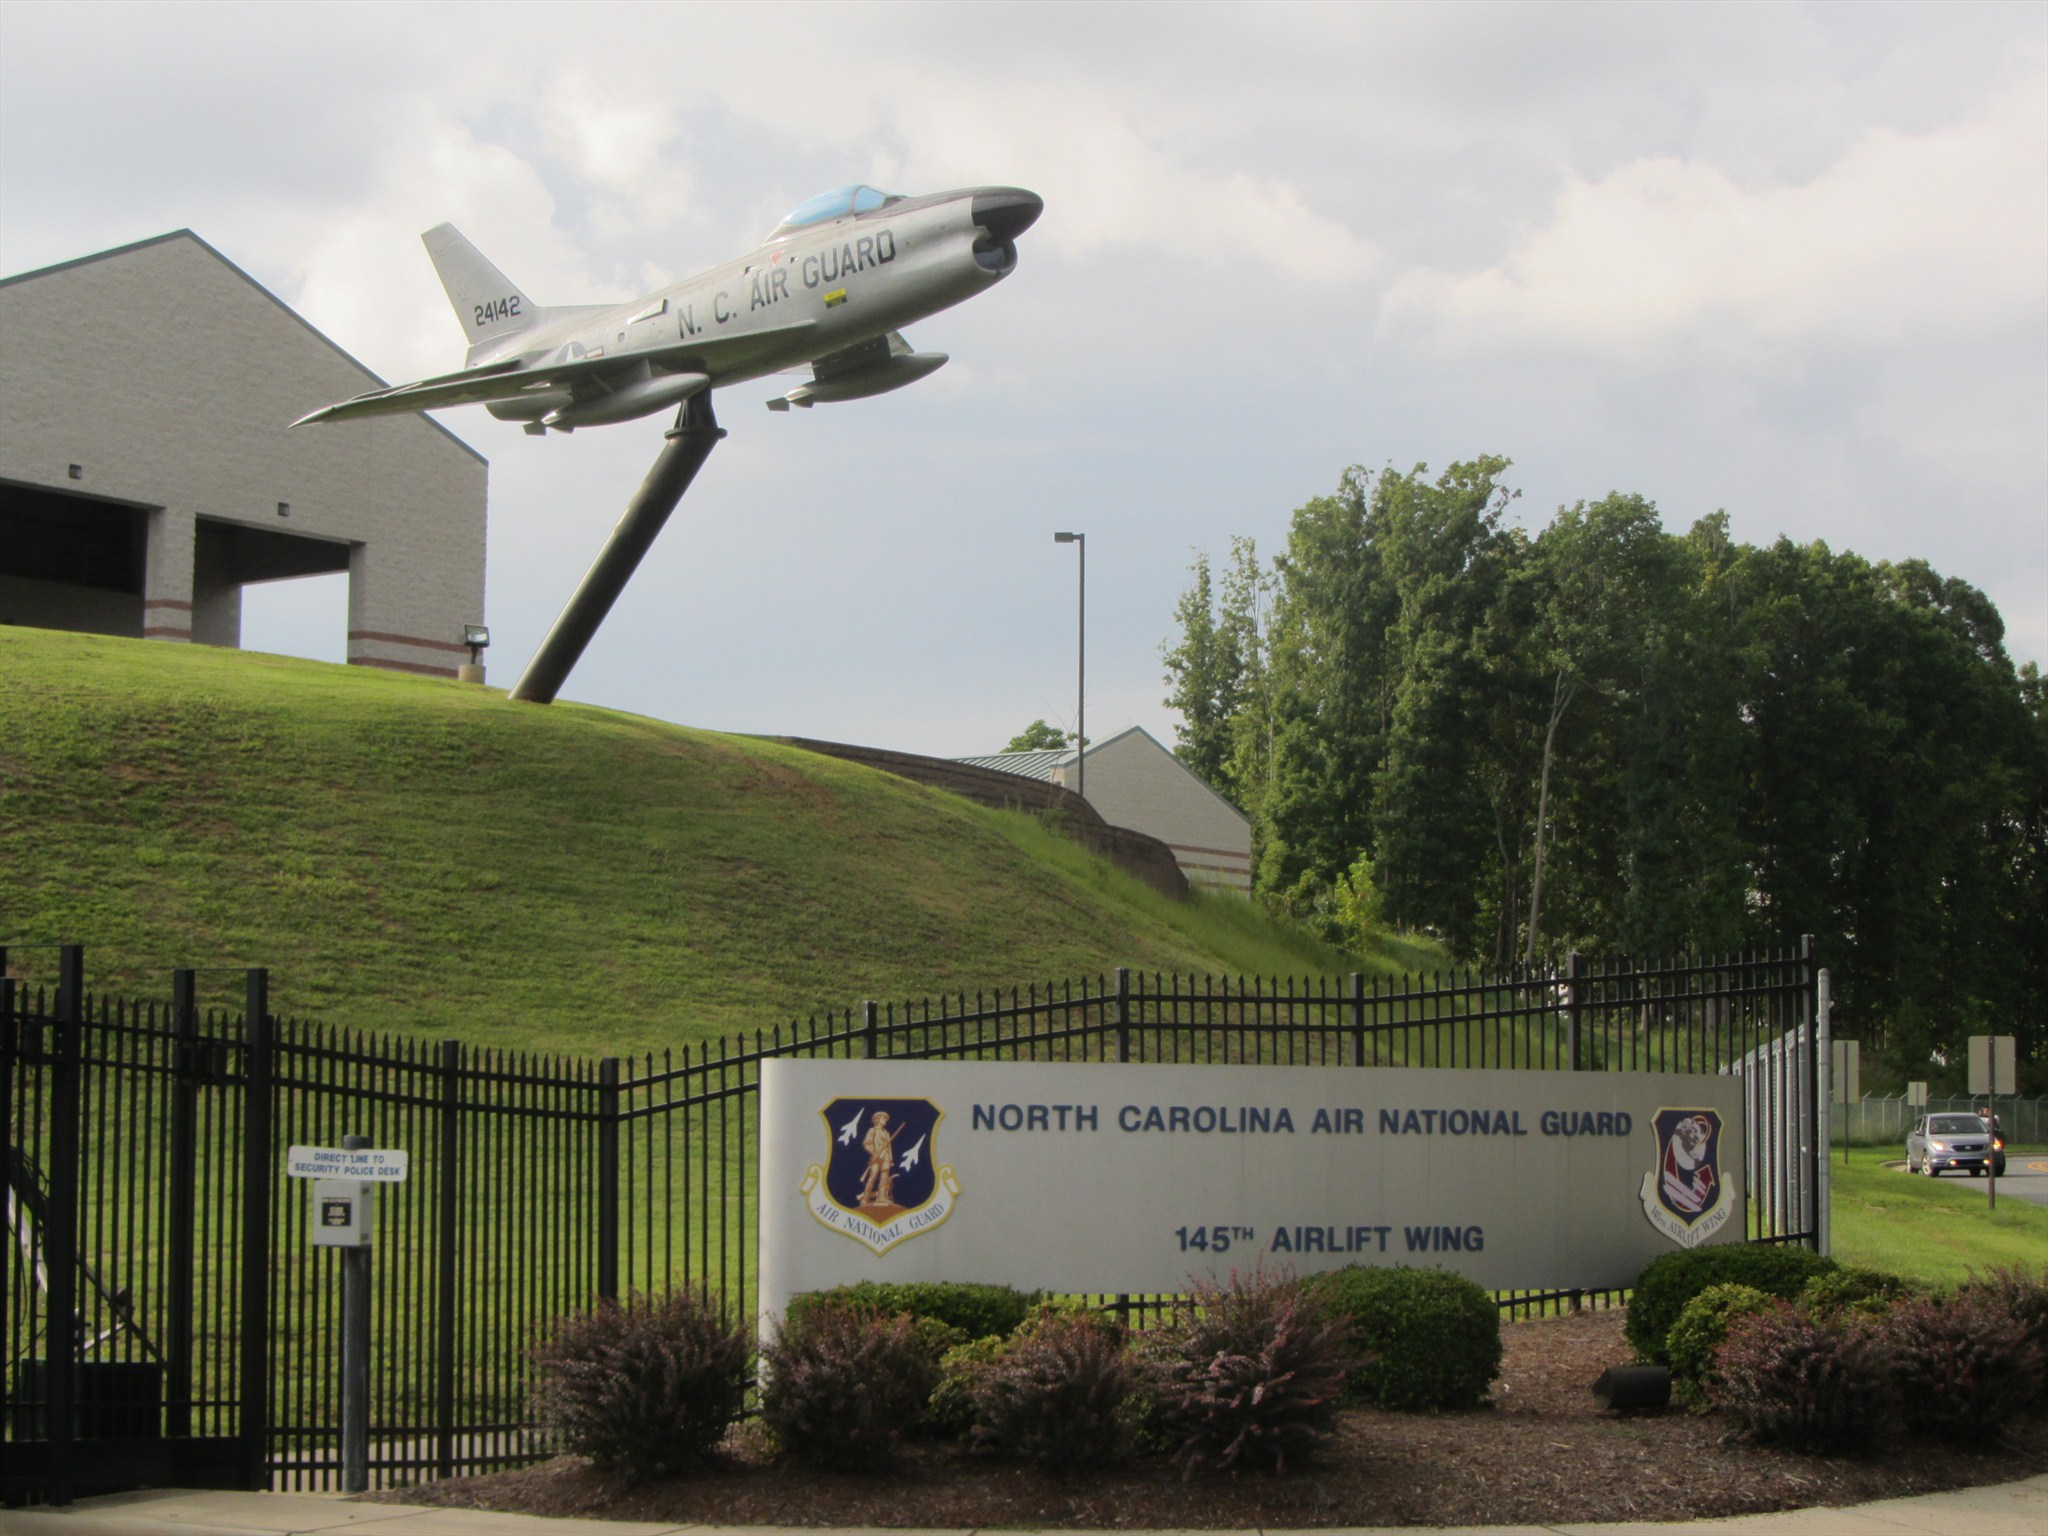 F-86 over the sign